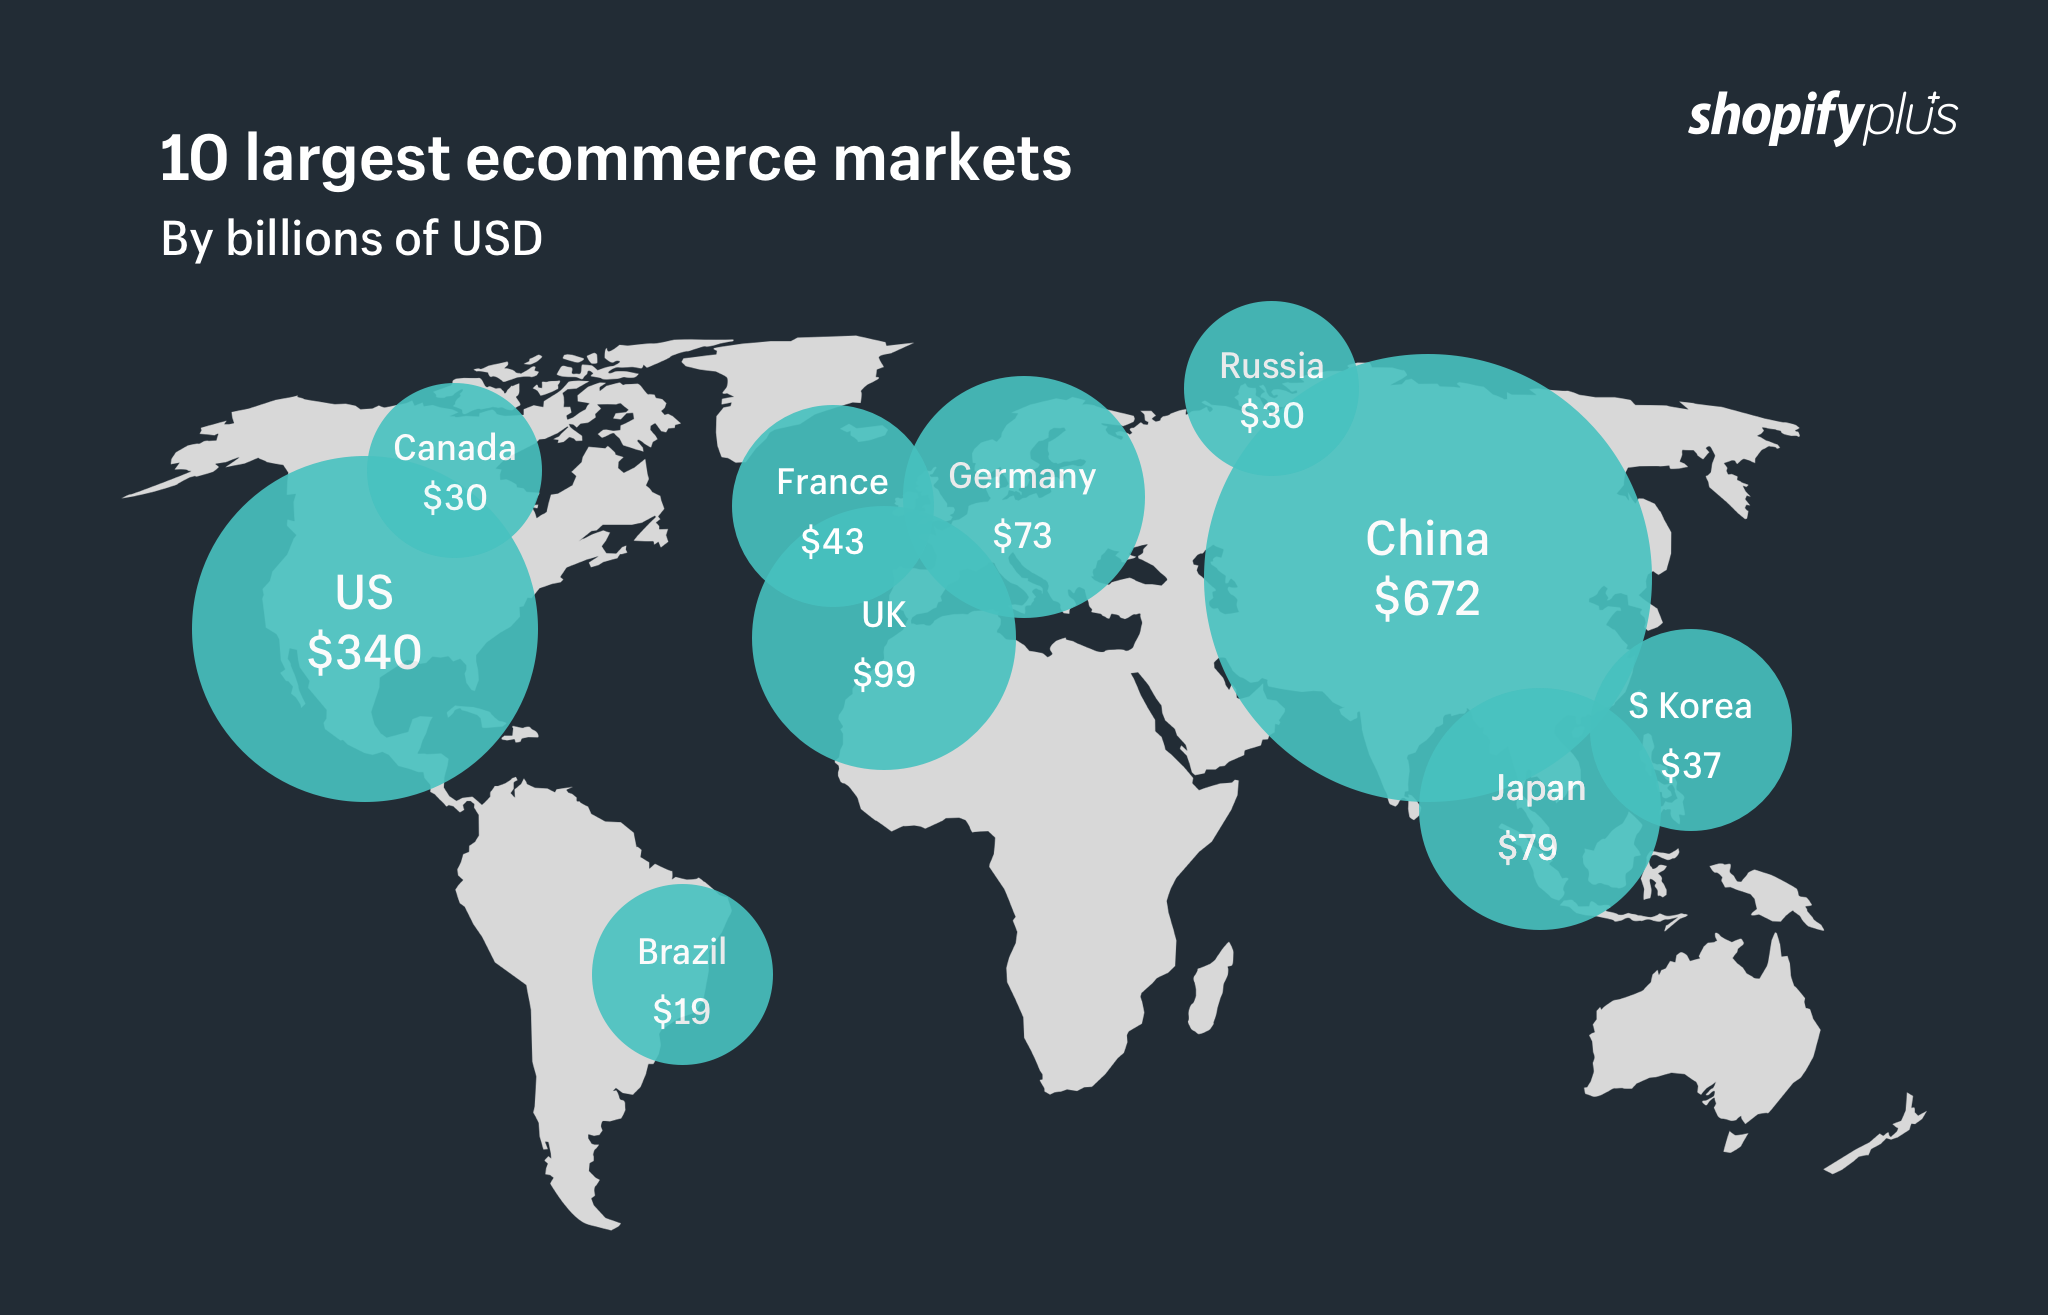 Global ecommerce will define the future of ecommerce